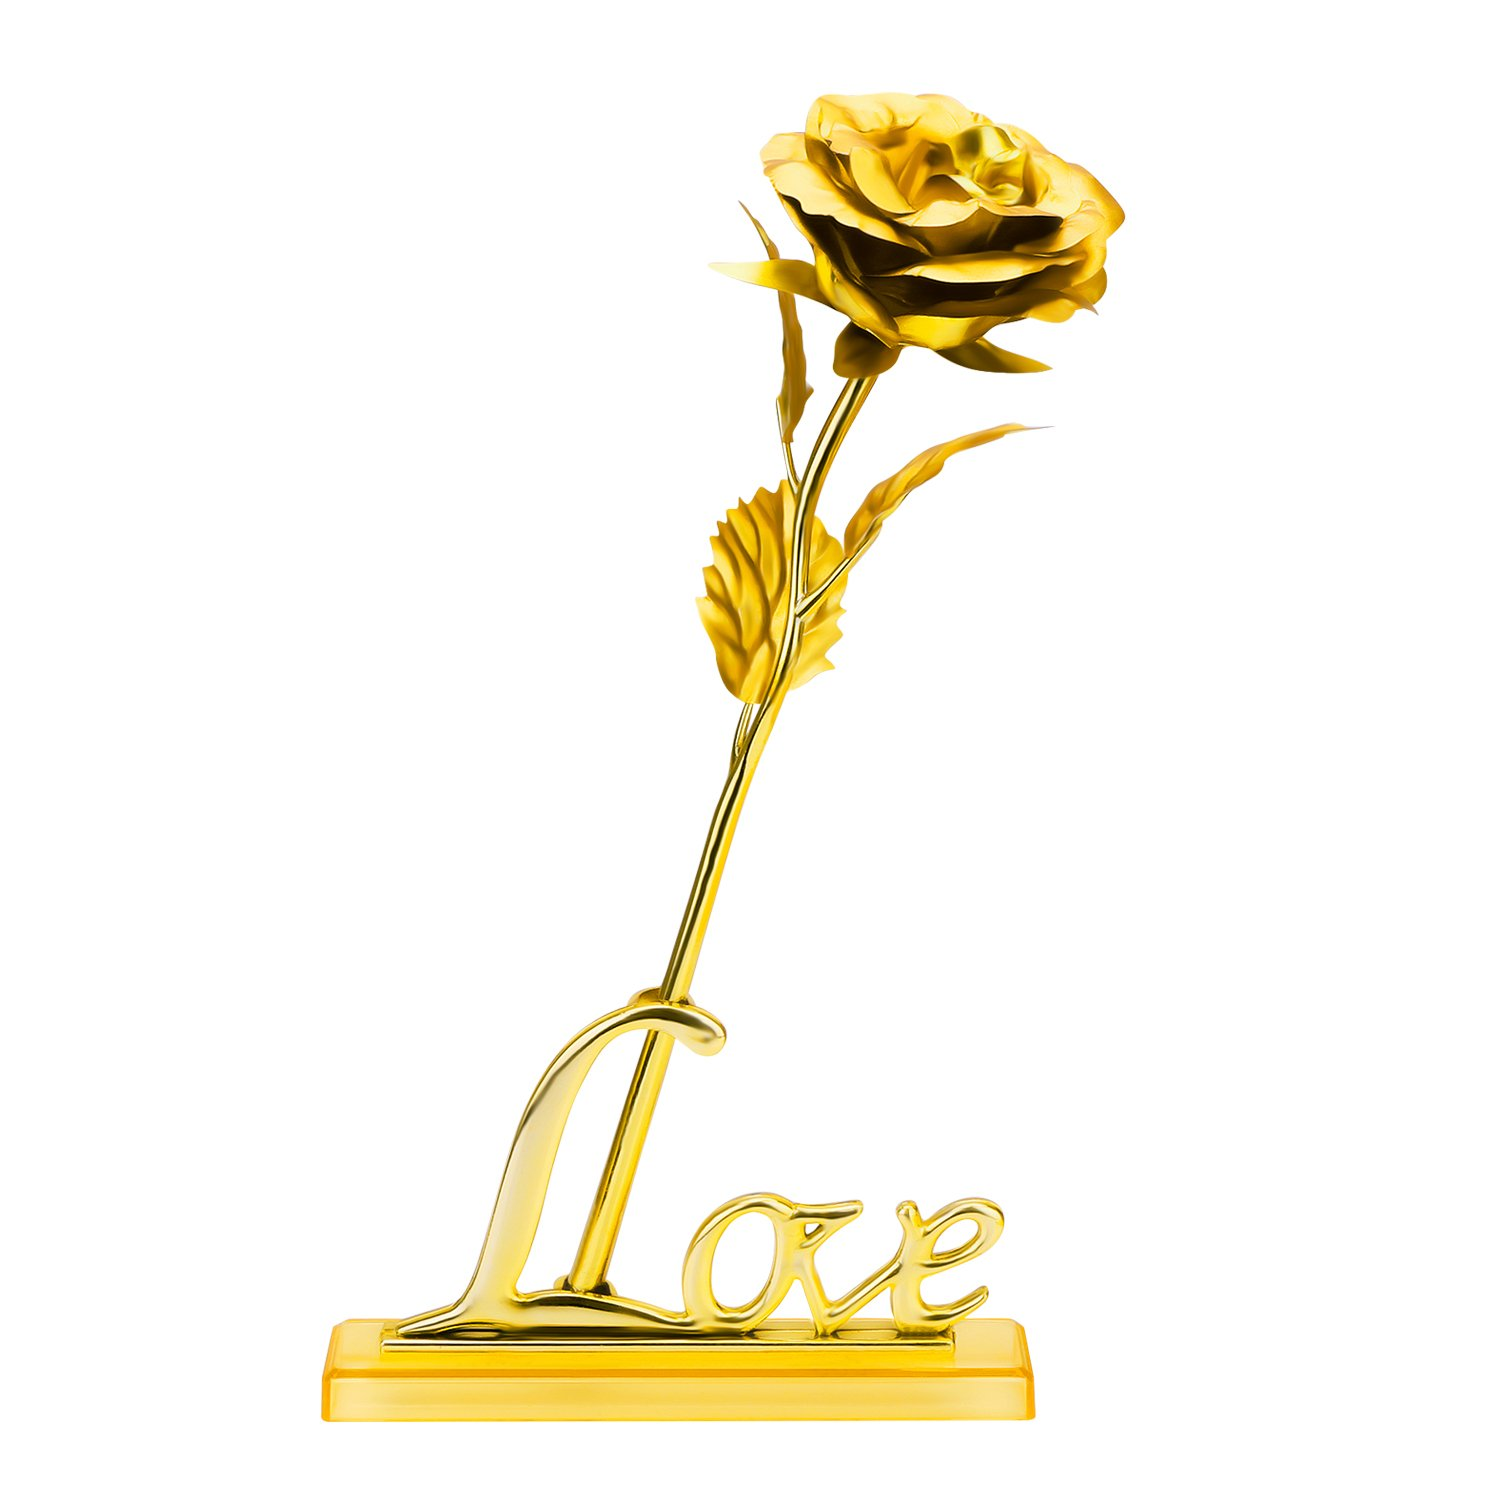 Amazon prociv gold roses 24k gold foil decoration artificial amazon prociv gold roses 24k gold foil decoration artificial rose flowers in gift box best gift for mothers day valentines day wedding day izmirmasajfo